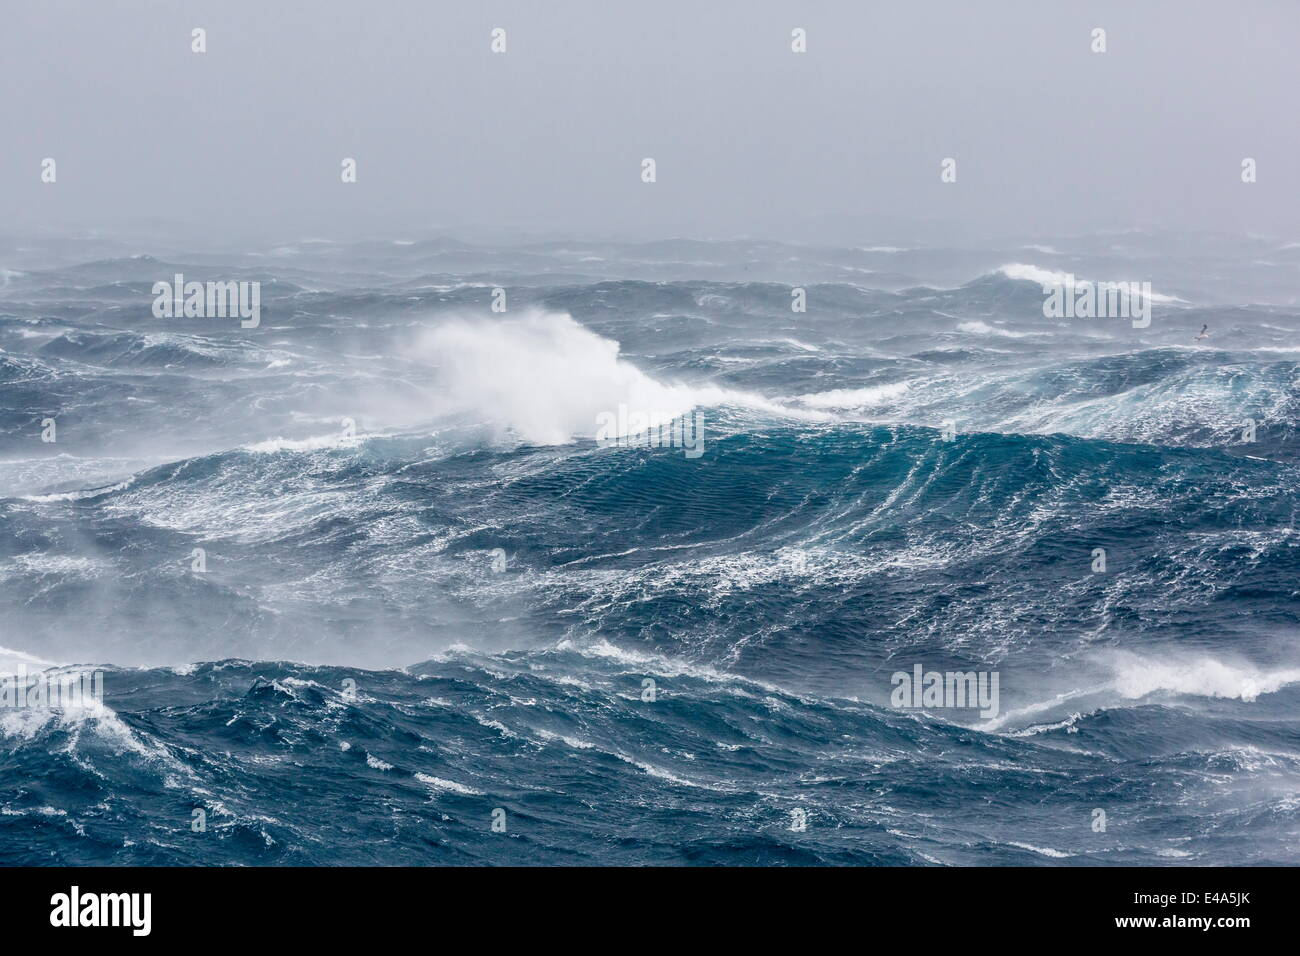 Gale force westerly winds build large waves in the Drake Passage, Antarctica, Polar Regions - Stock Image